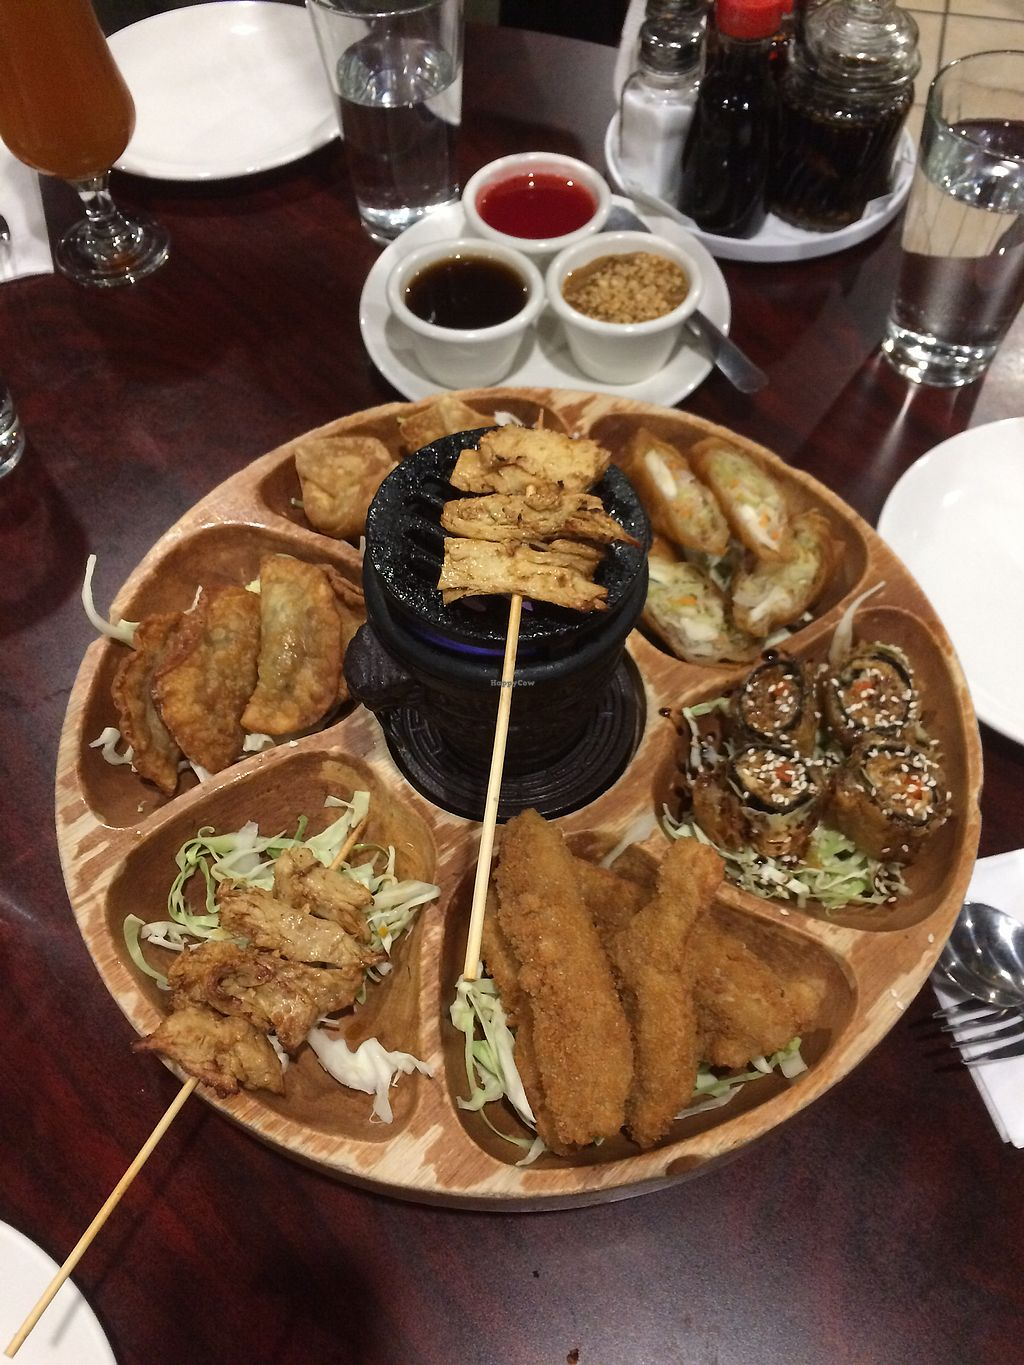 """Photo of Teapot Vegetarian House  by <a href=""""/members/profile/Arti"""">Arti</a> <br/>Bo bo platter - big portion size, good for sharing <br/> December 16, 2017  - <a href='/contact/abuse/image/5492/336146'>Report</a>"""